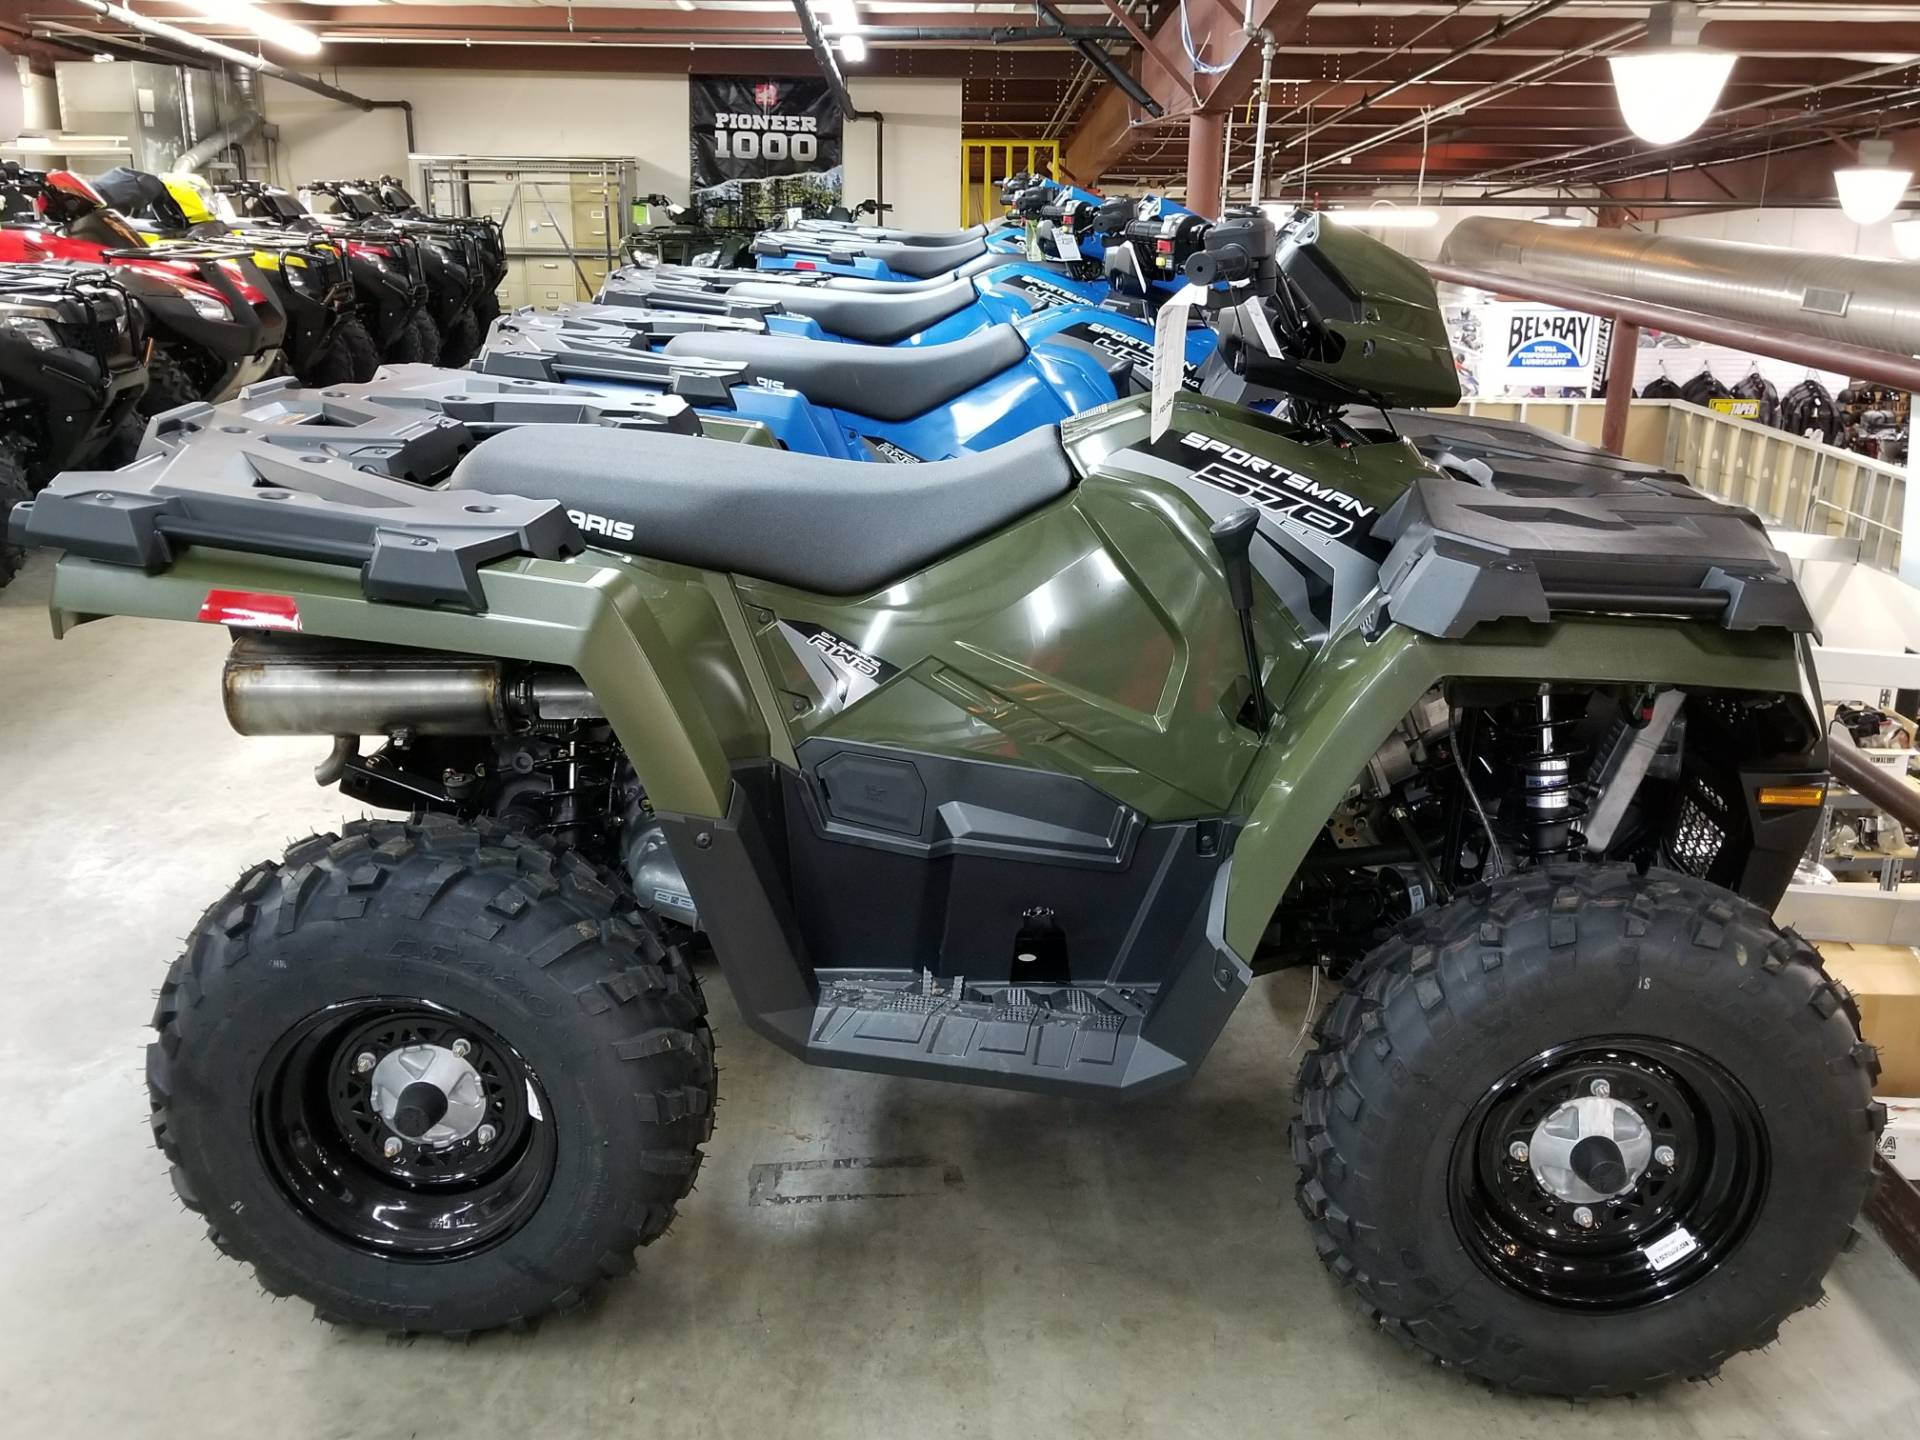 New 2018 Polaris Sportsman 570 EPS ATVs in Statesville, NC | Stock ...